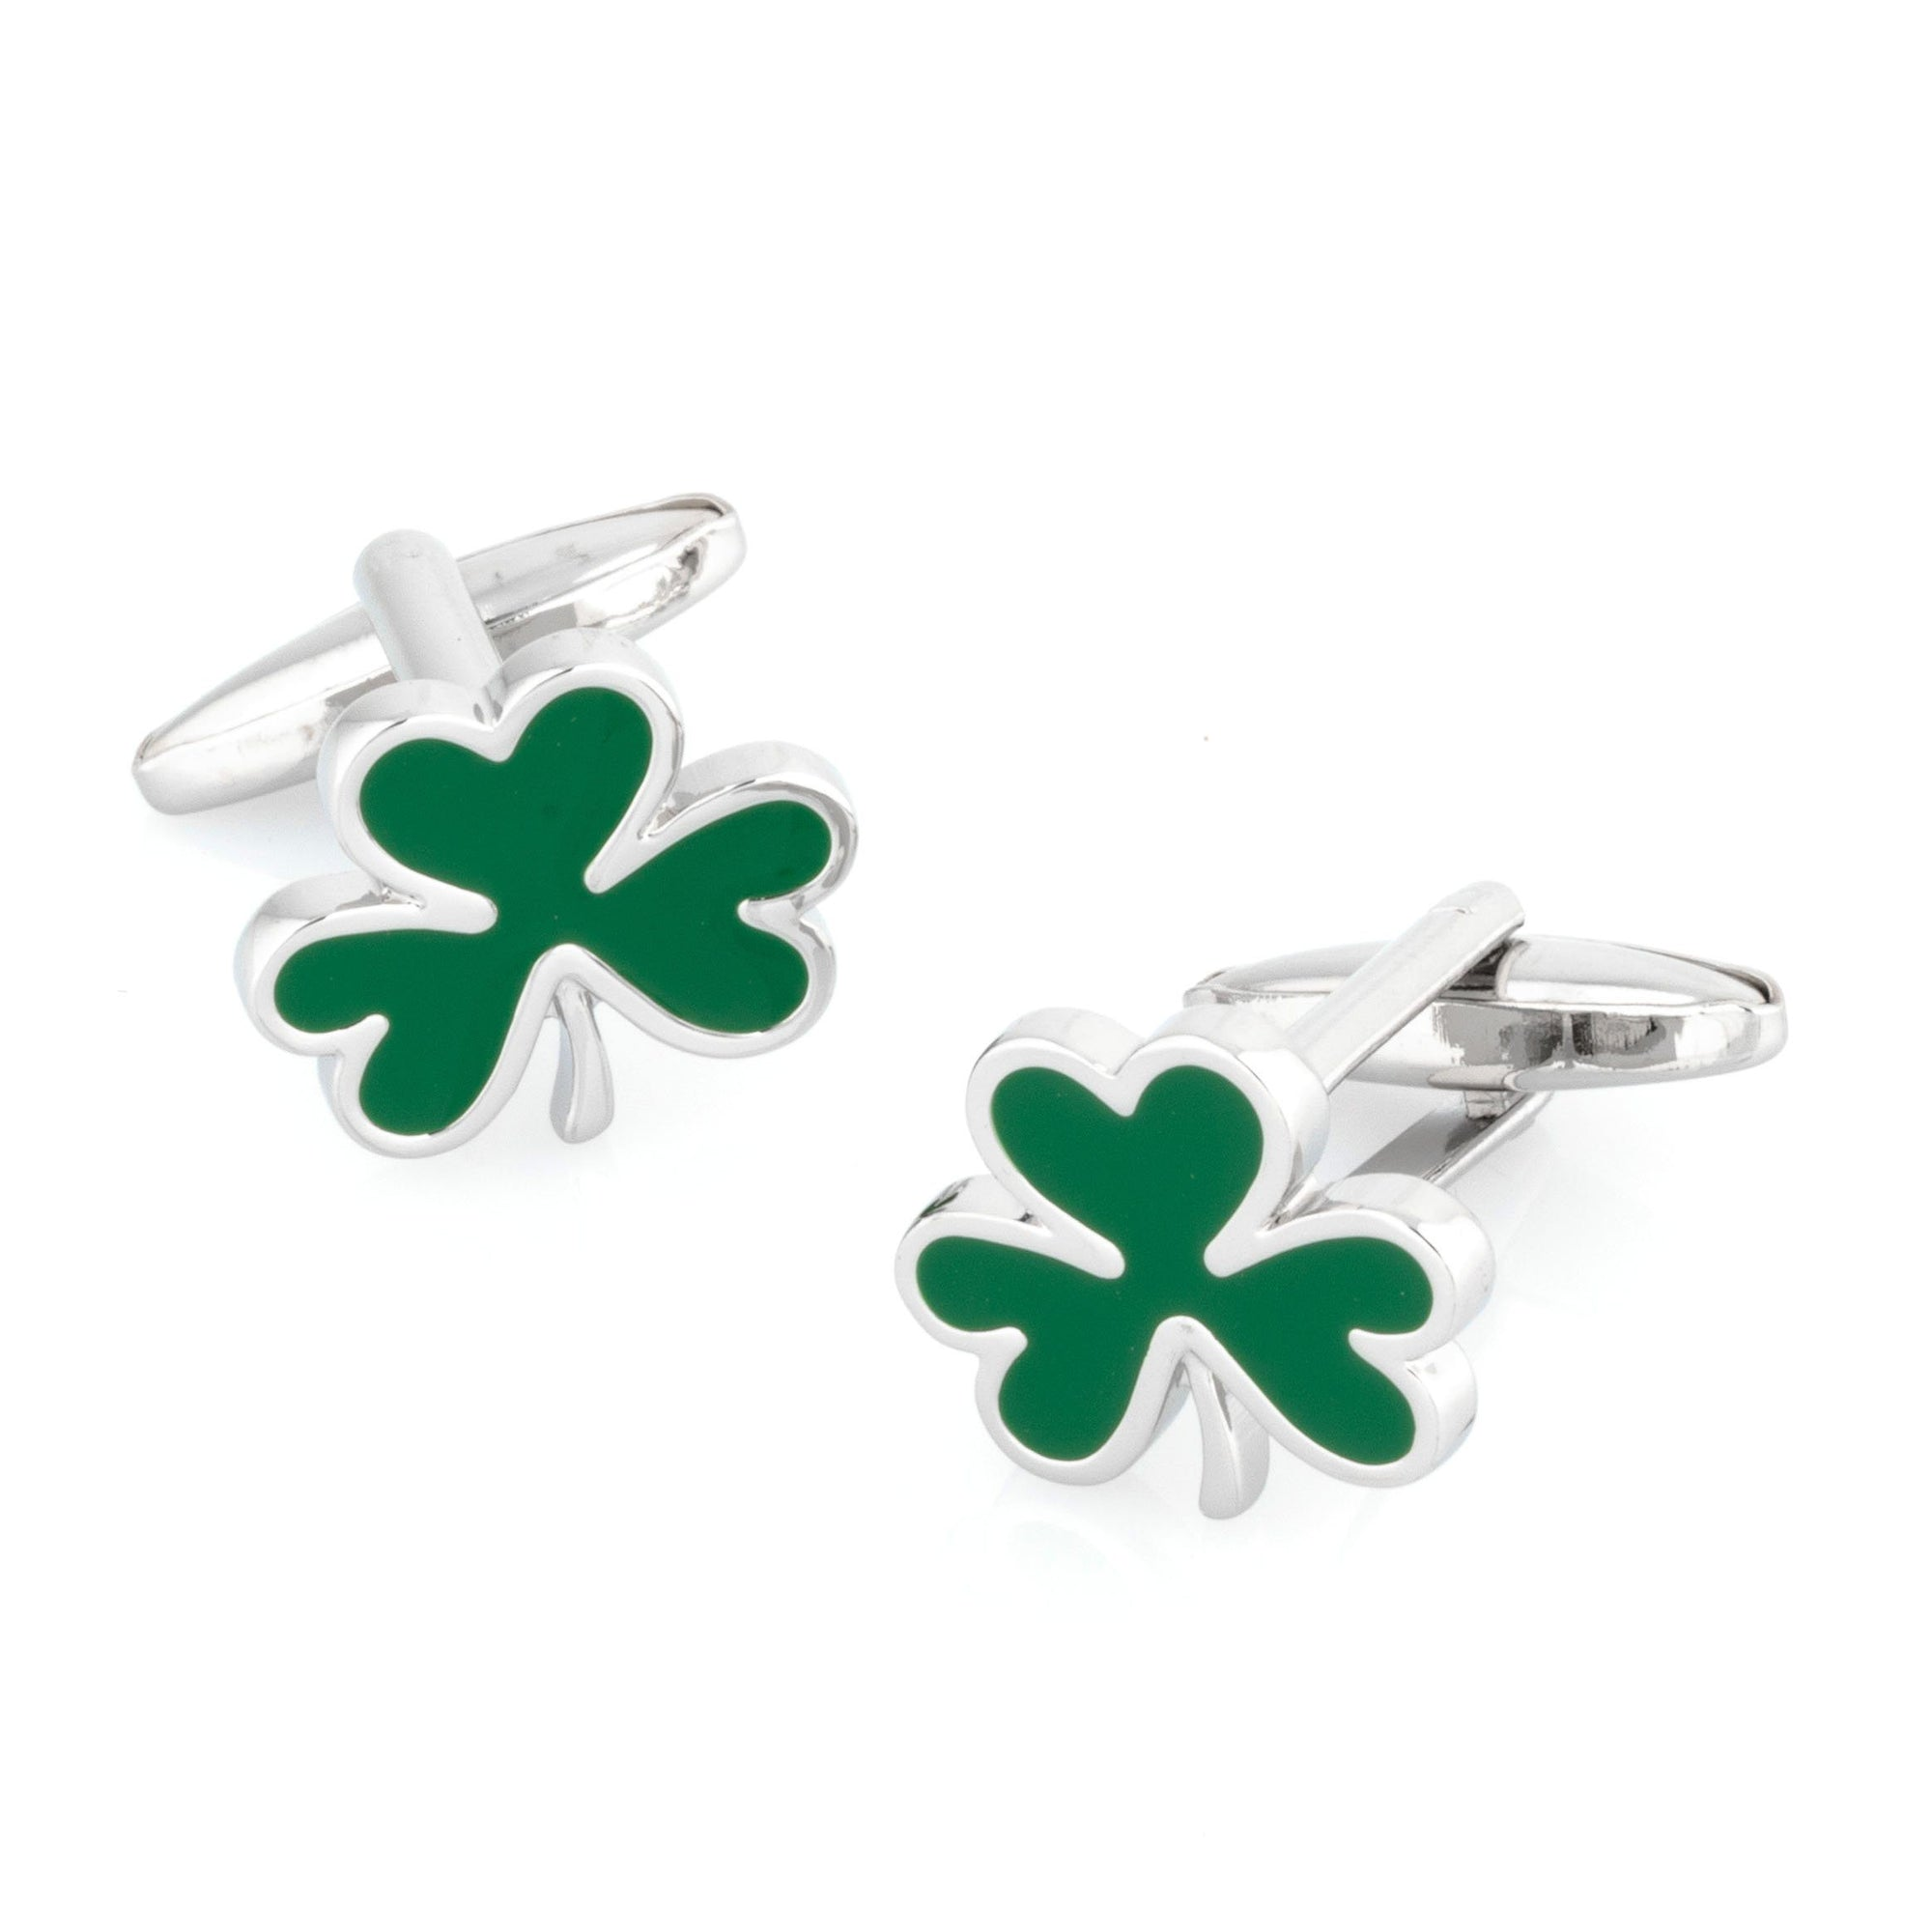 Irish Shamrock Cufflinks Novelty Cufflinks Clinks Australia